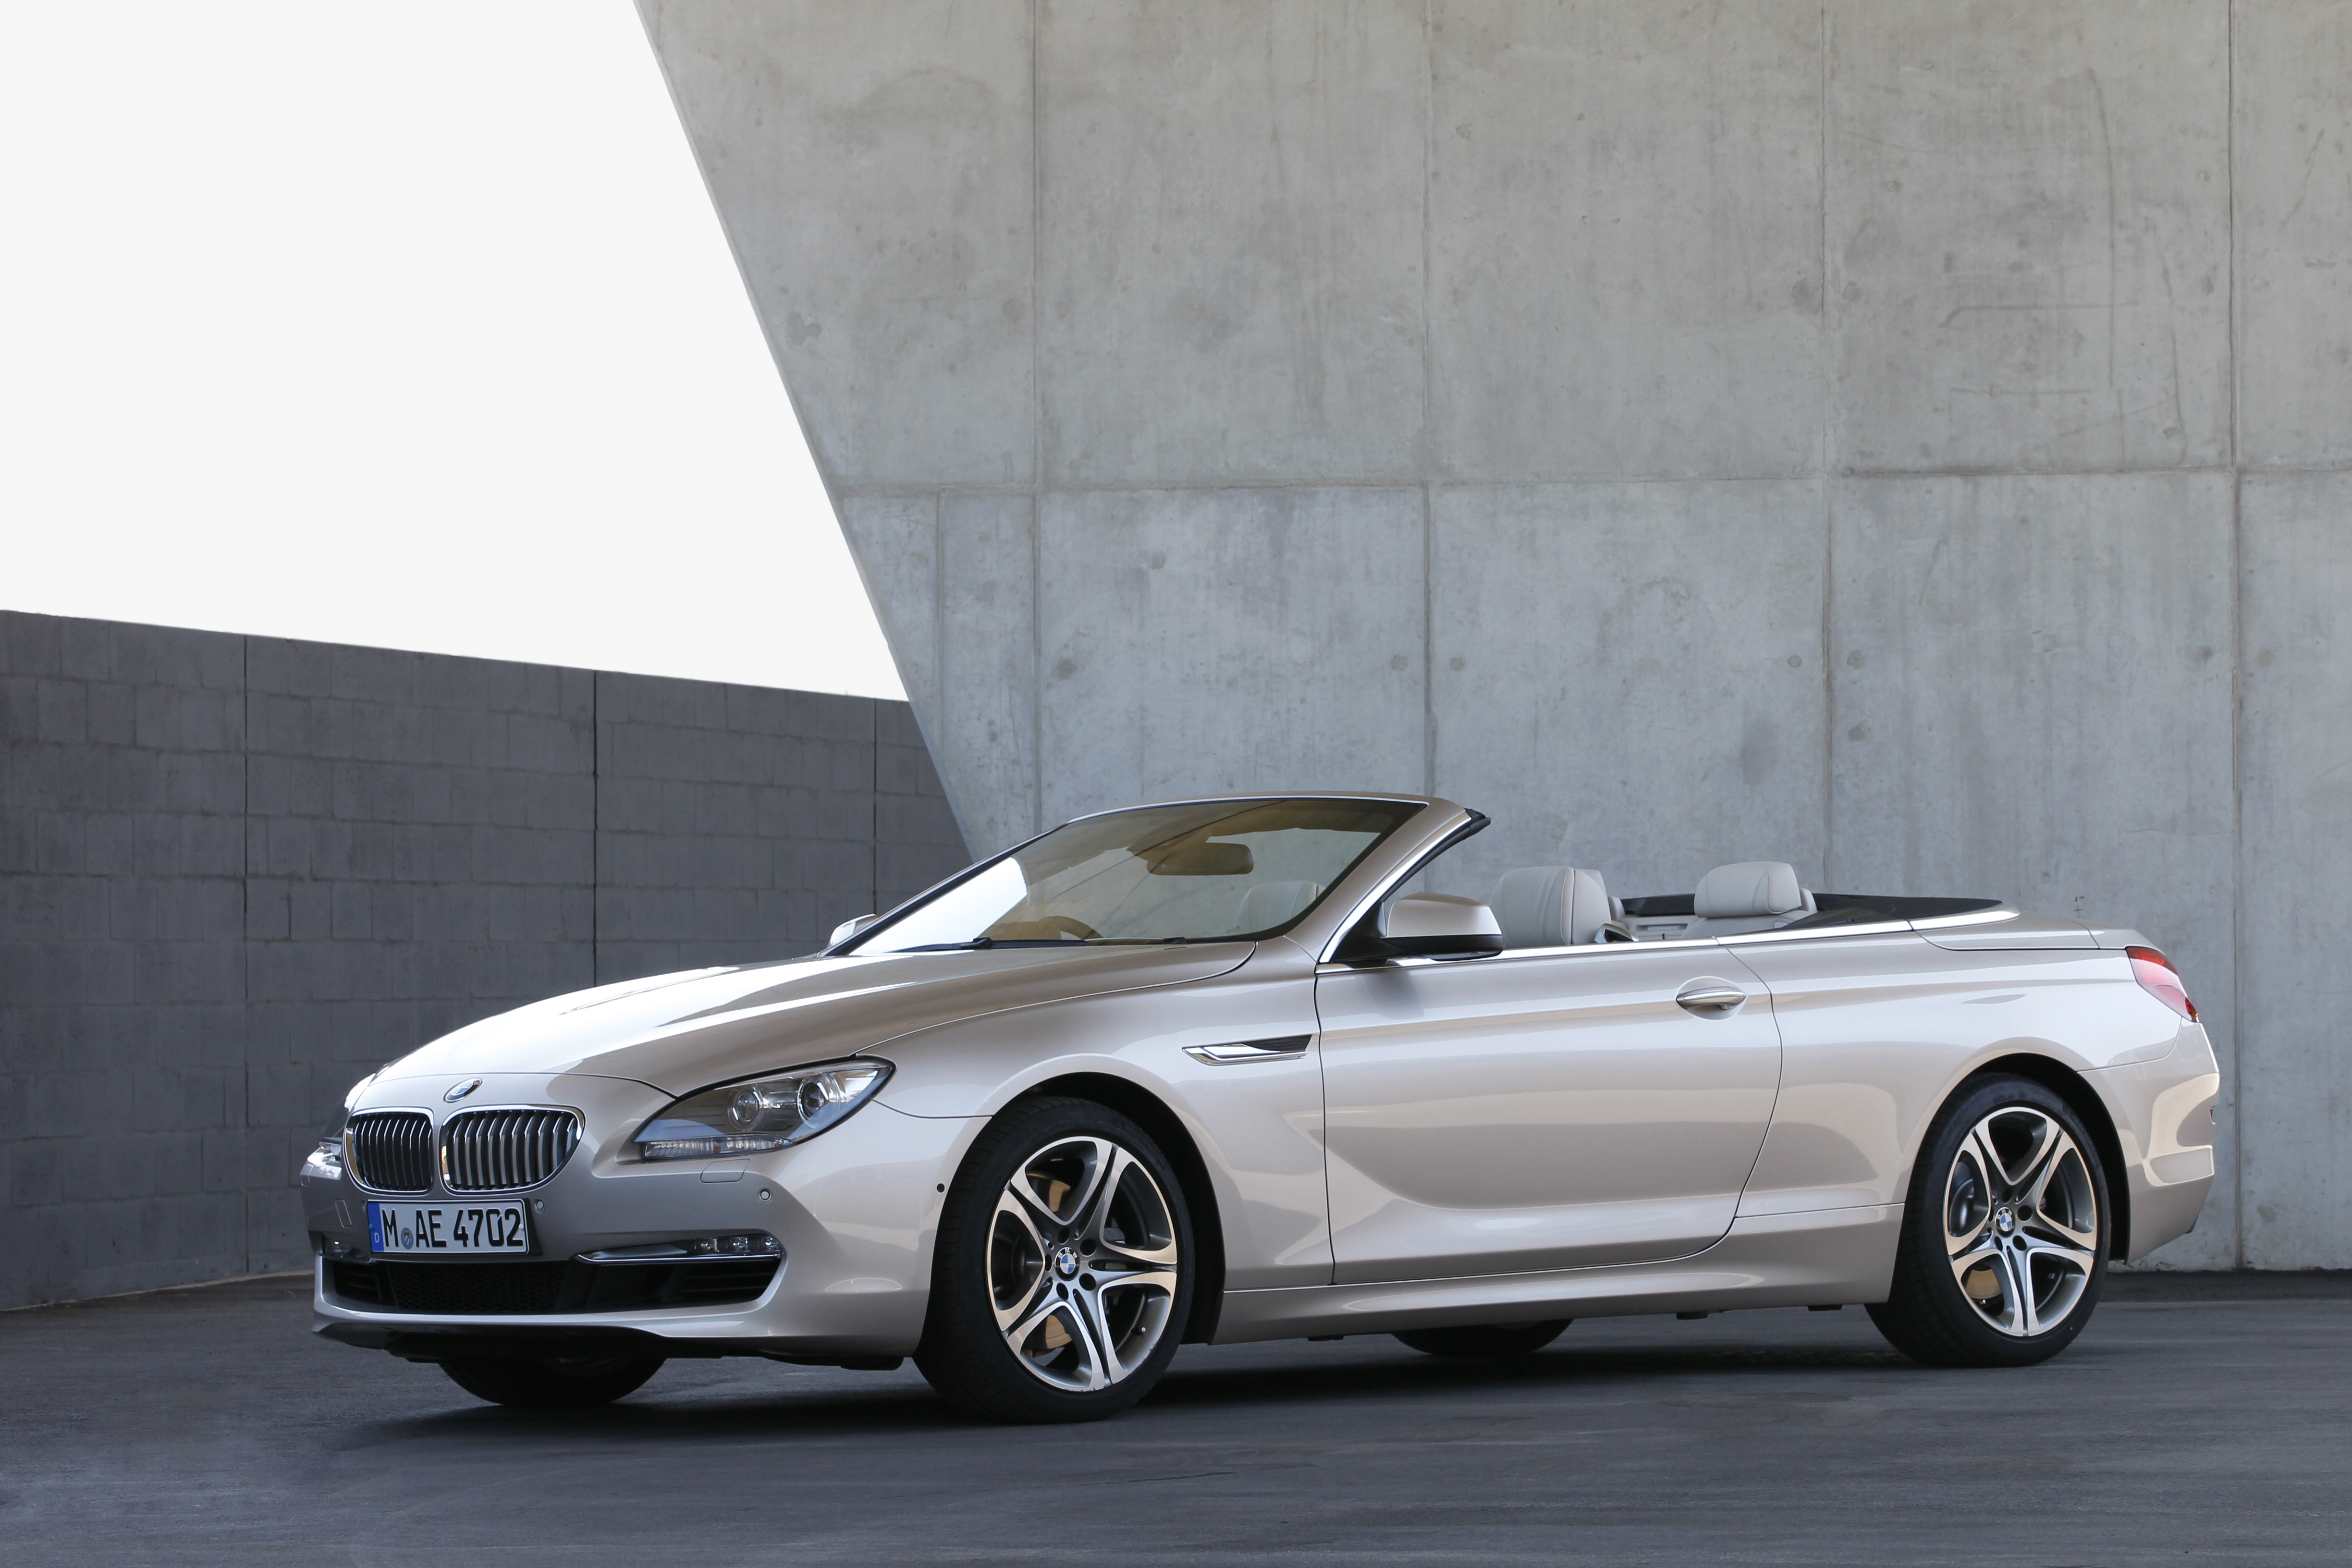 bmw 6er cabrio f12 startklar f r den sommer 2011. Black Bedroom Furniture Sets. Home Design Ideas